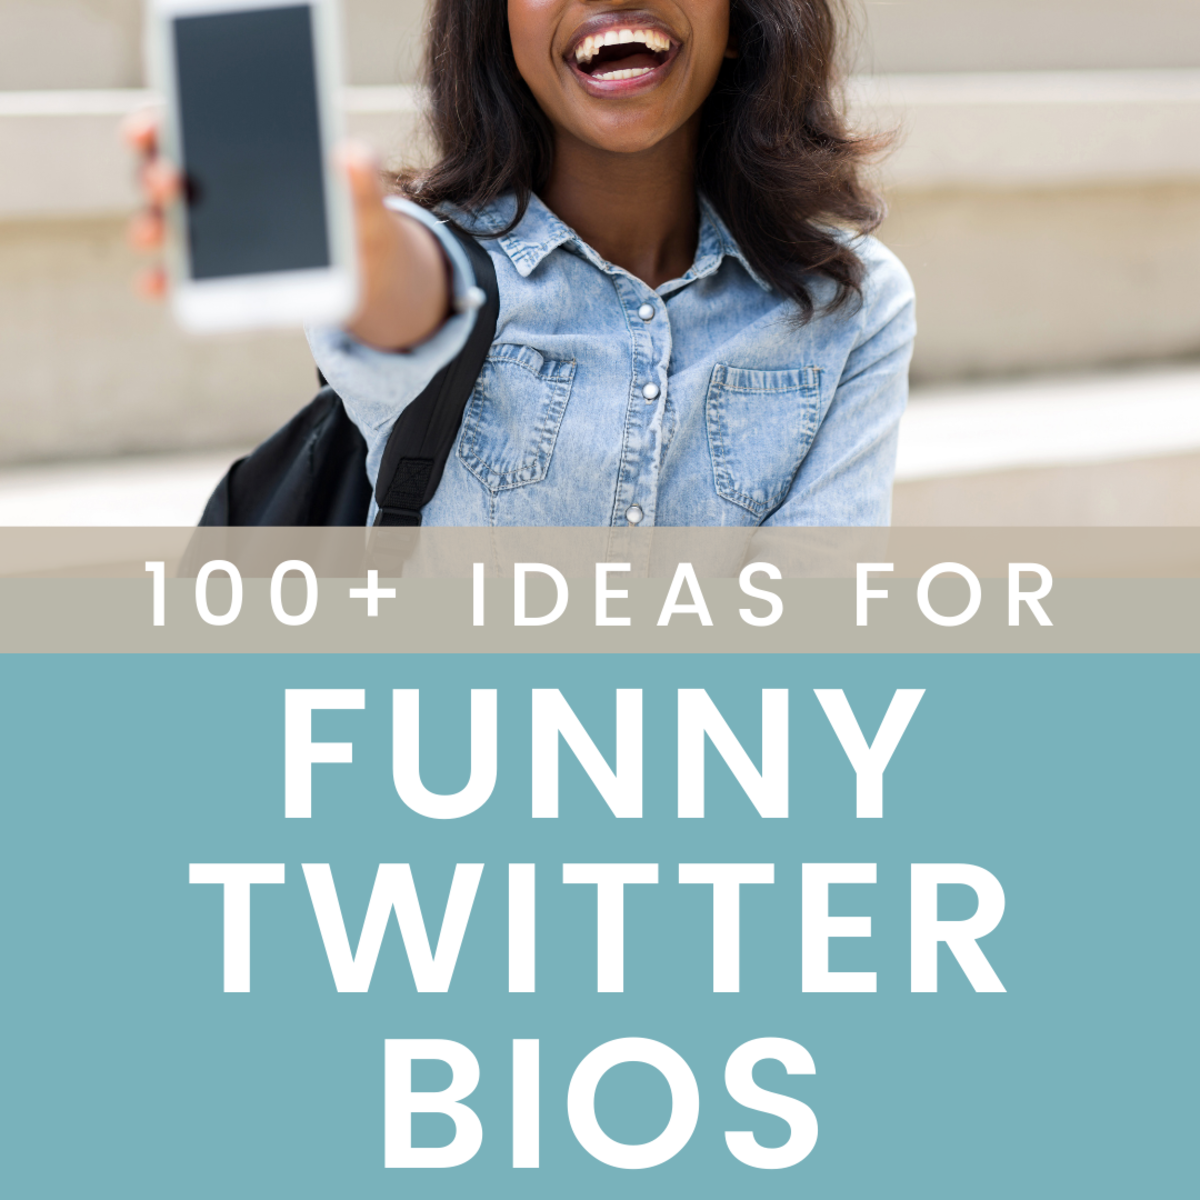 Make your followers laugh out loud with these bio ideas.